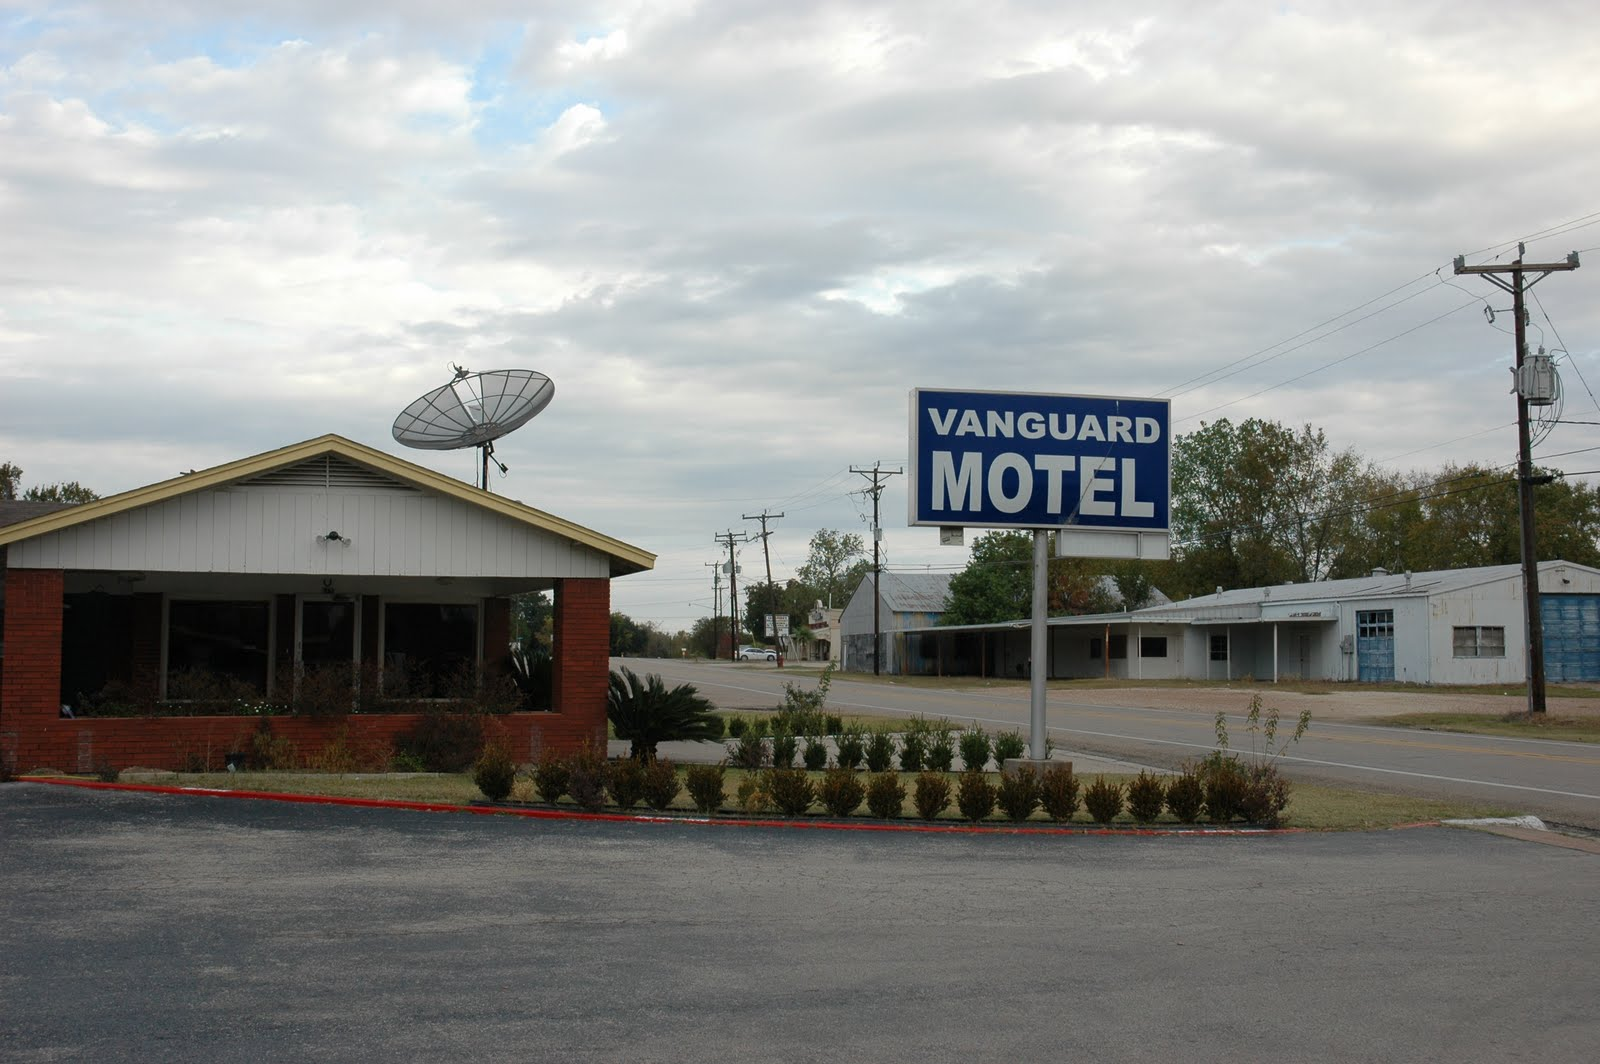 The Vanguard Motel Located At 711 N La Salle St Navasota Tx 936 825 6497 Was Built Circa 1988 And Is Run By A Local Family I Looking For Place To